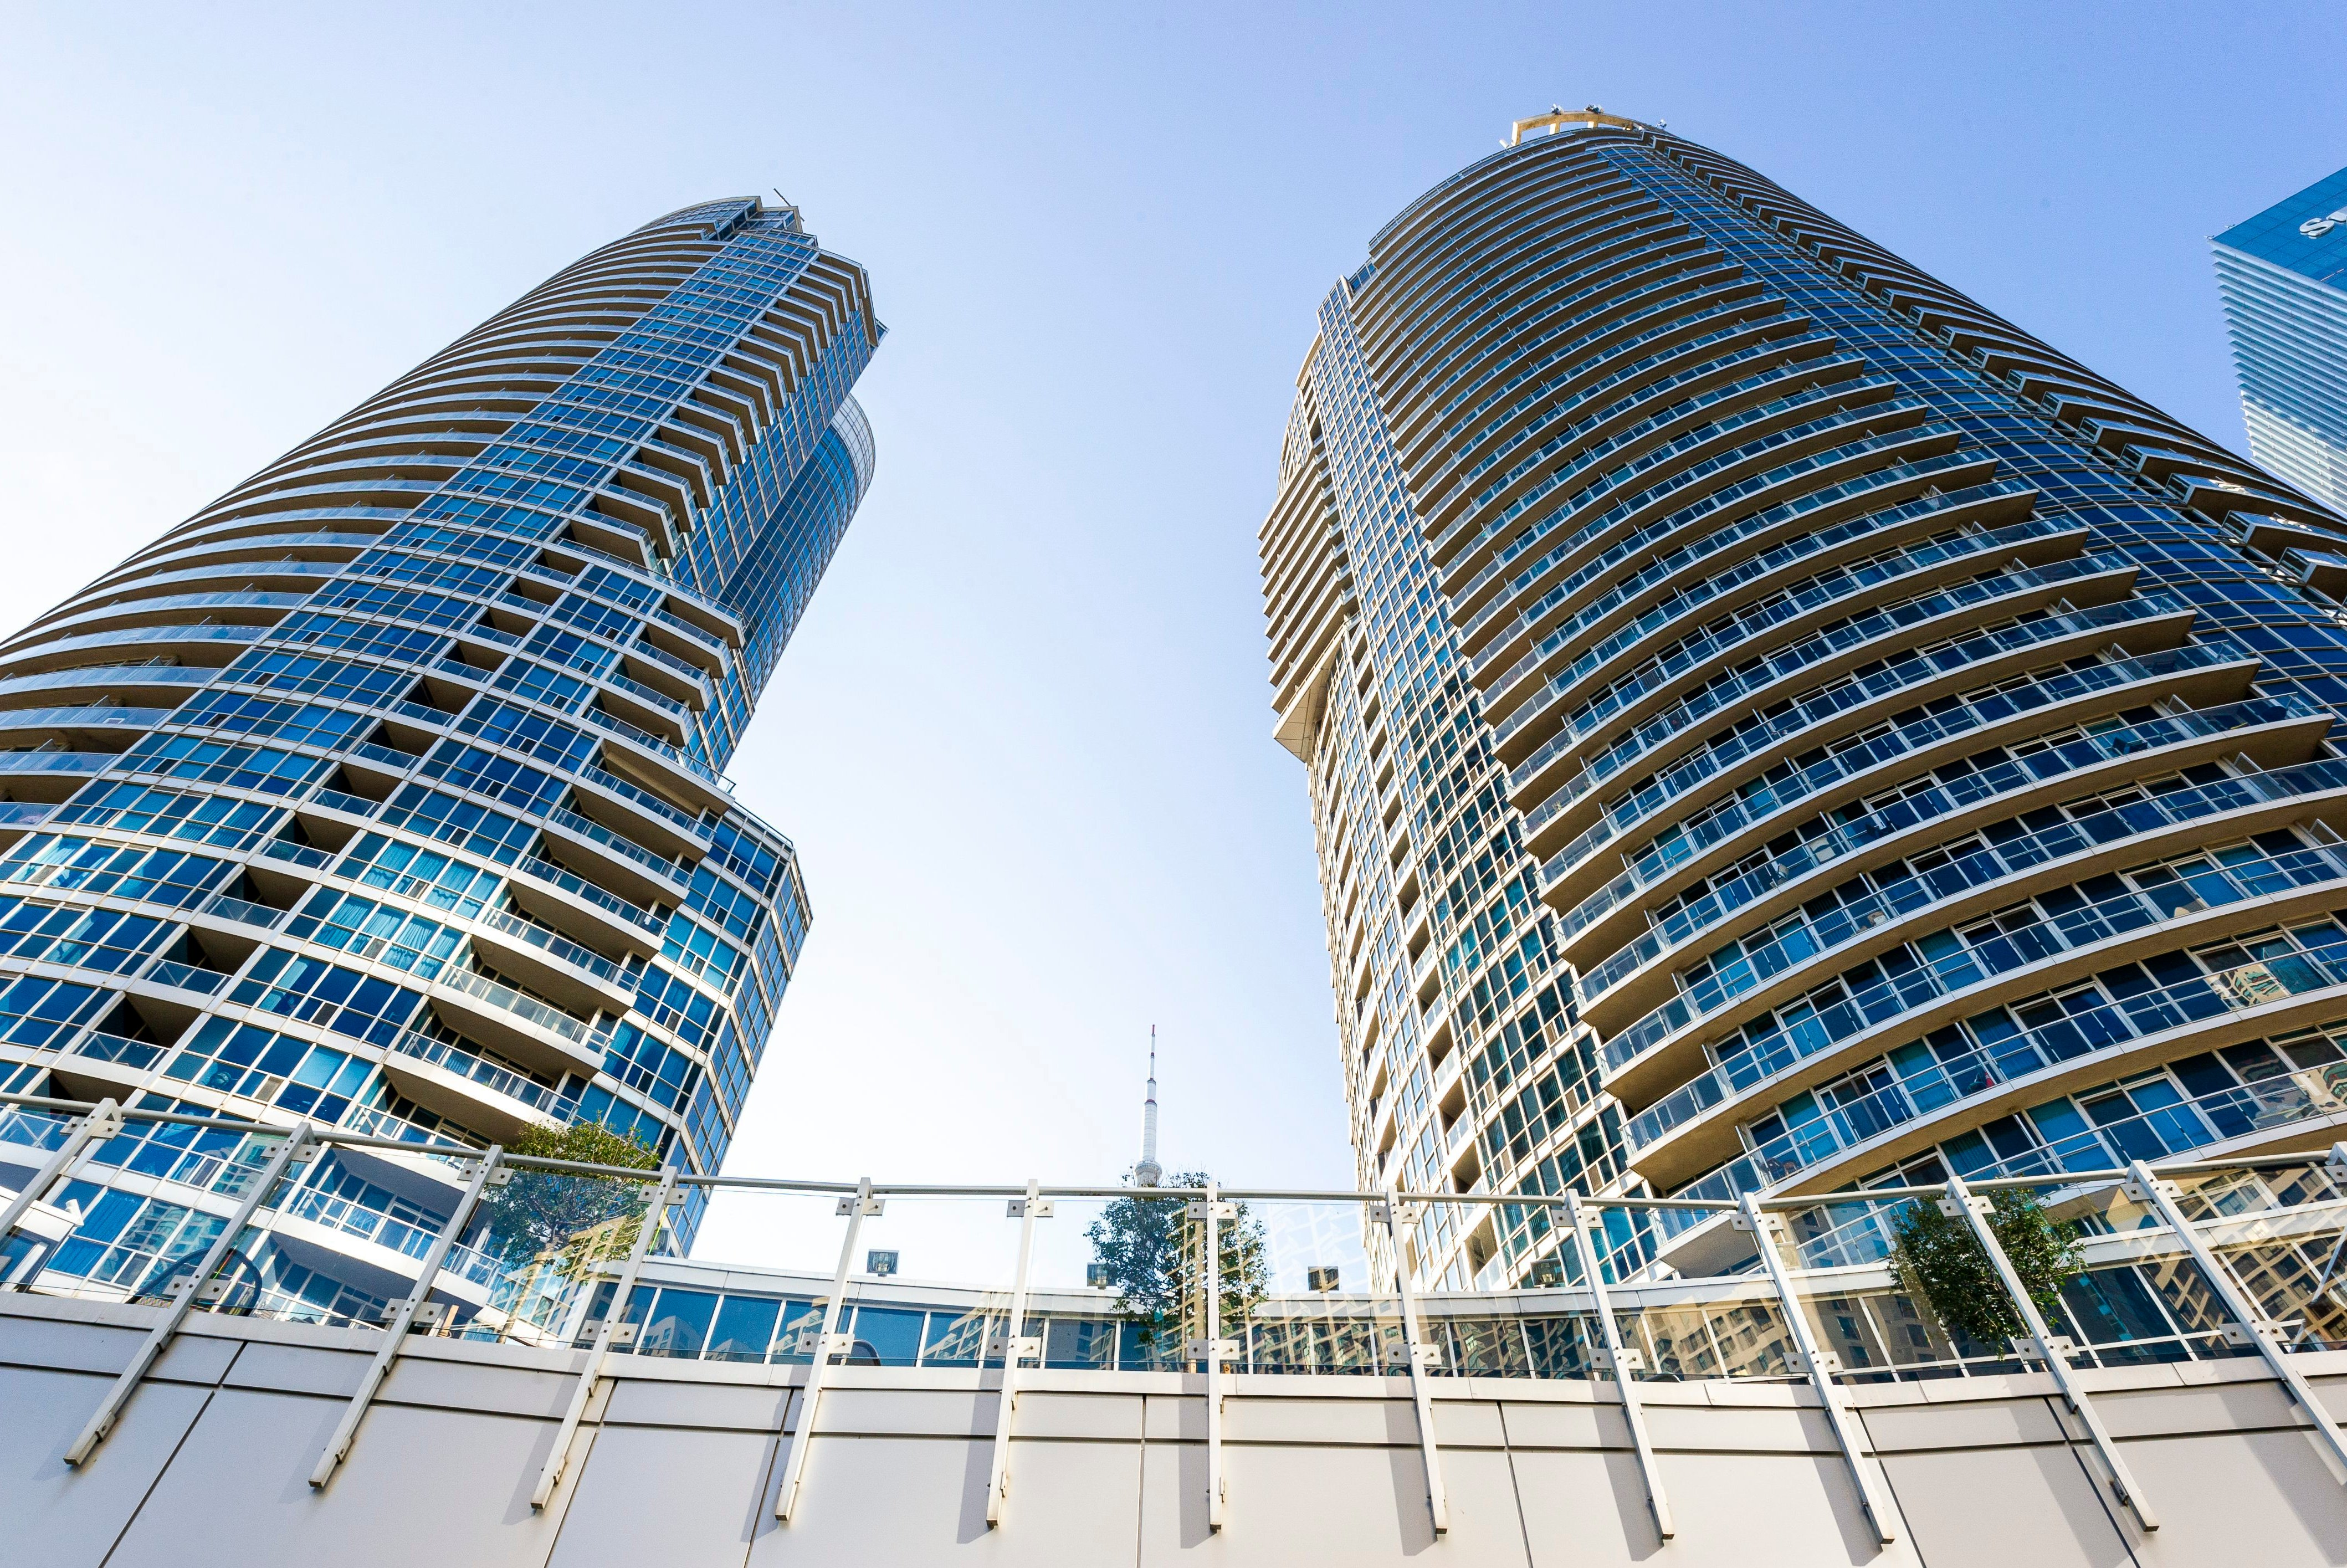 A general view of the Waterclub Condominium in the Toronto Waterfront area on August 31, 2018.